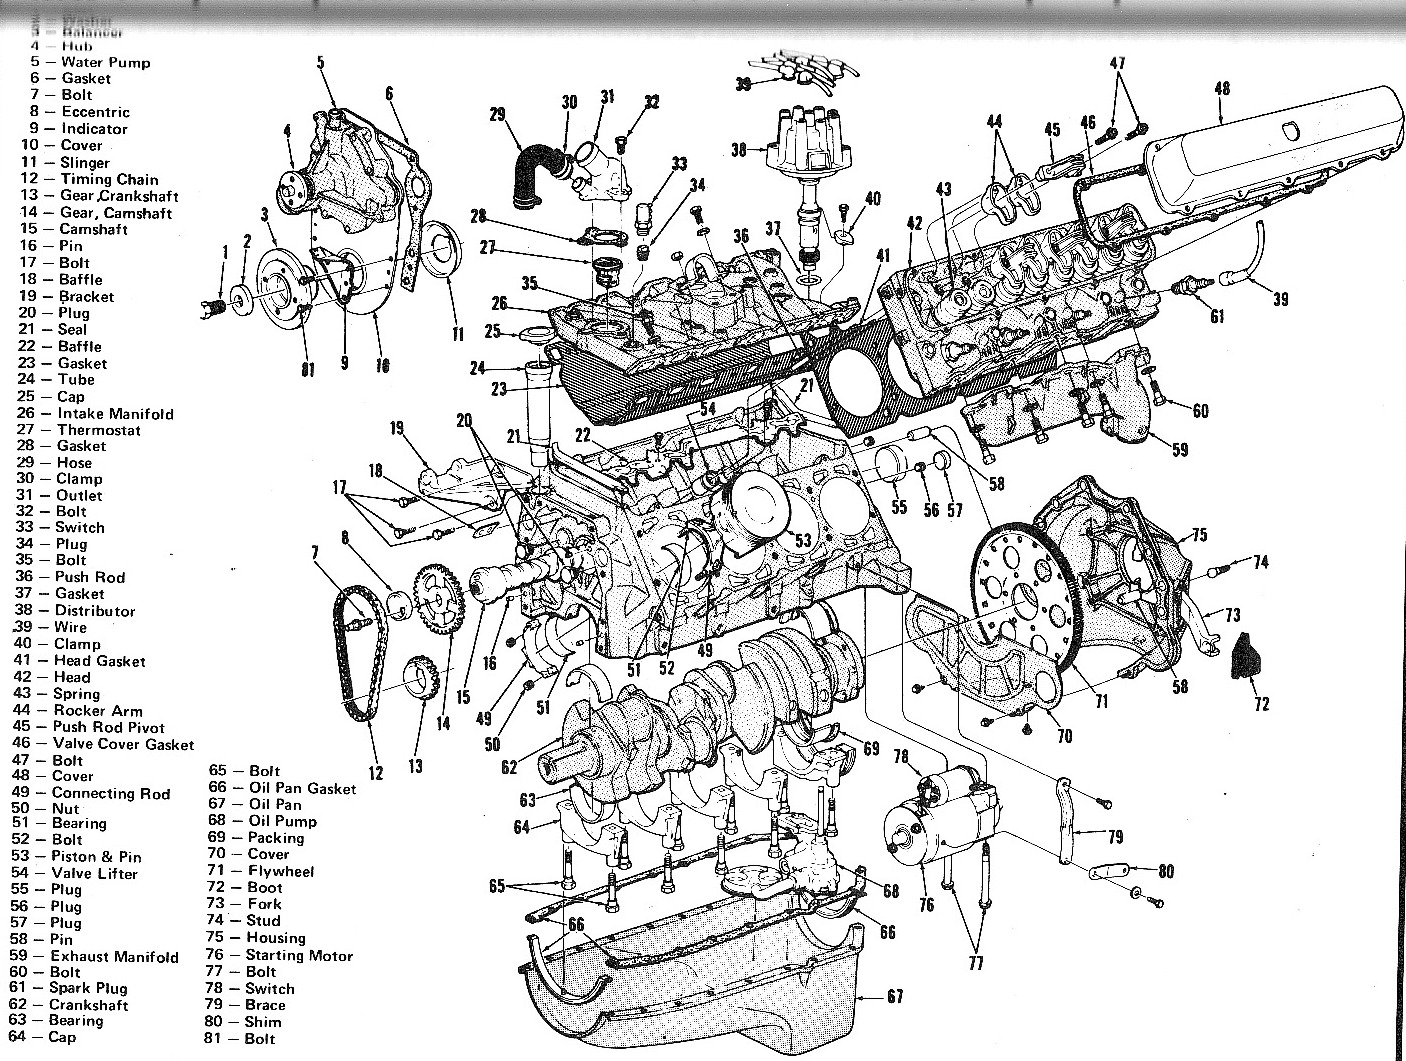 oldsmobile engine diagram wiring diagram inside 2004 oldsmobile silhouette engine diagram [ 1406 x 1061 Pixel ]